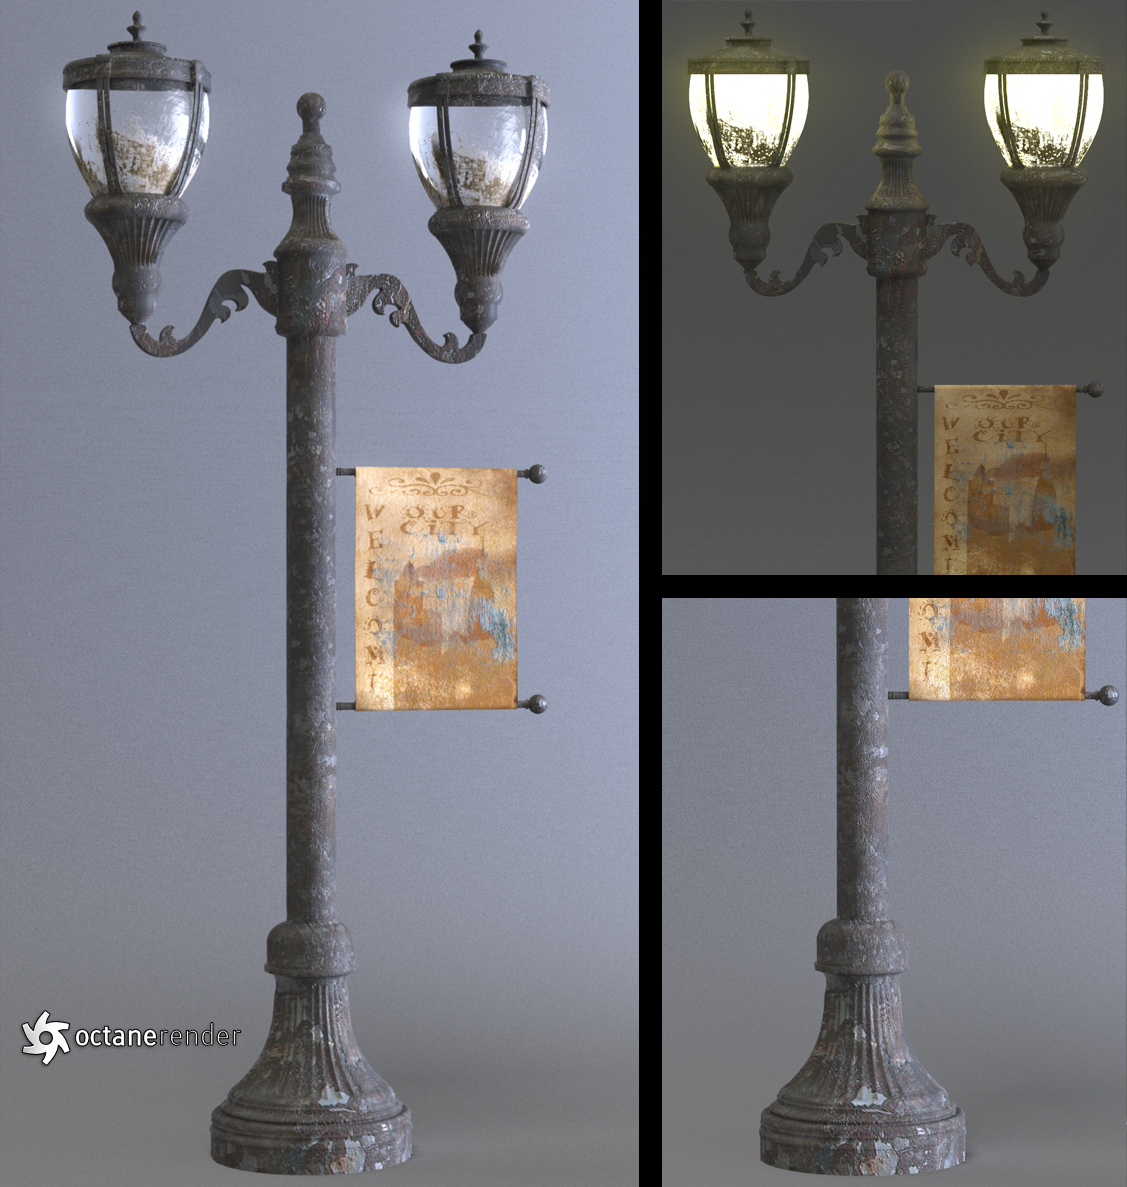 Antique Street Lamp by LuxXeon